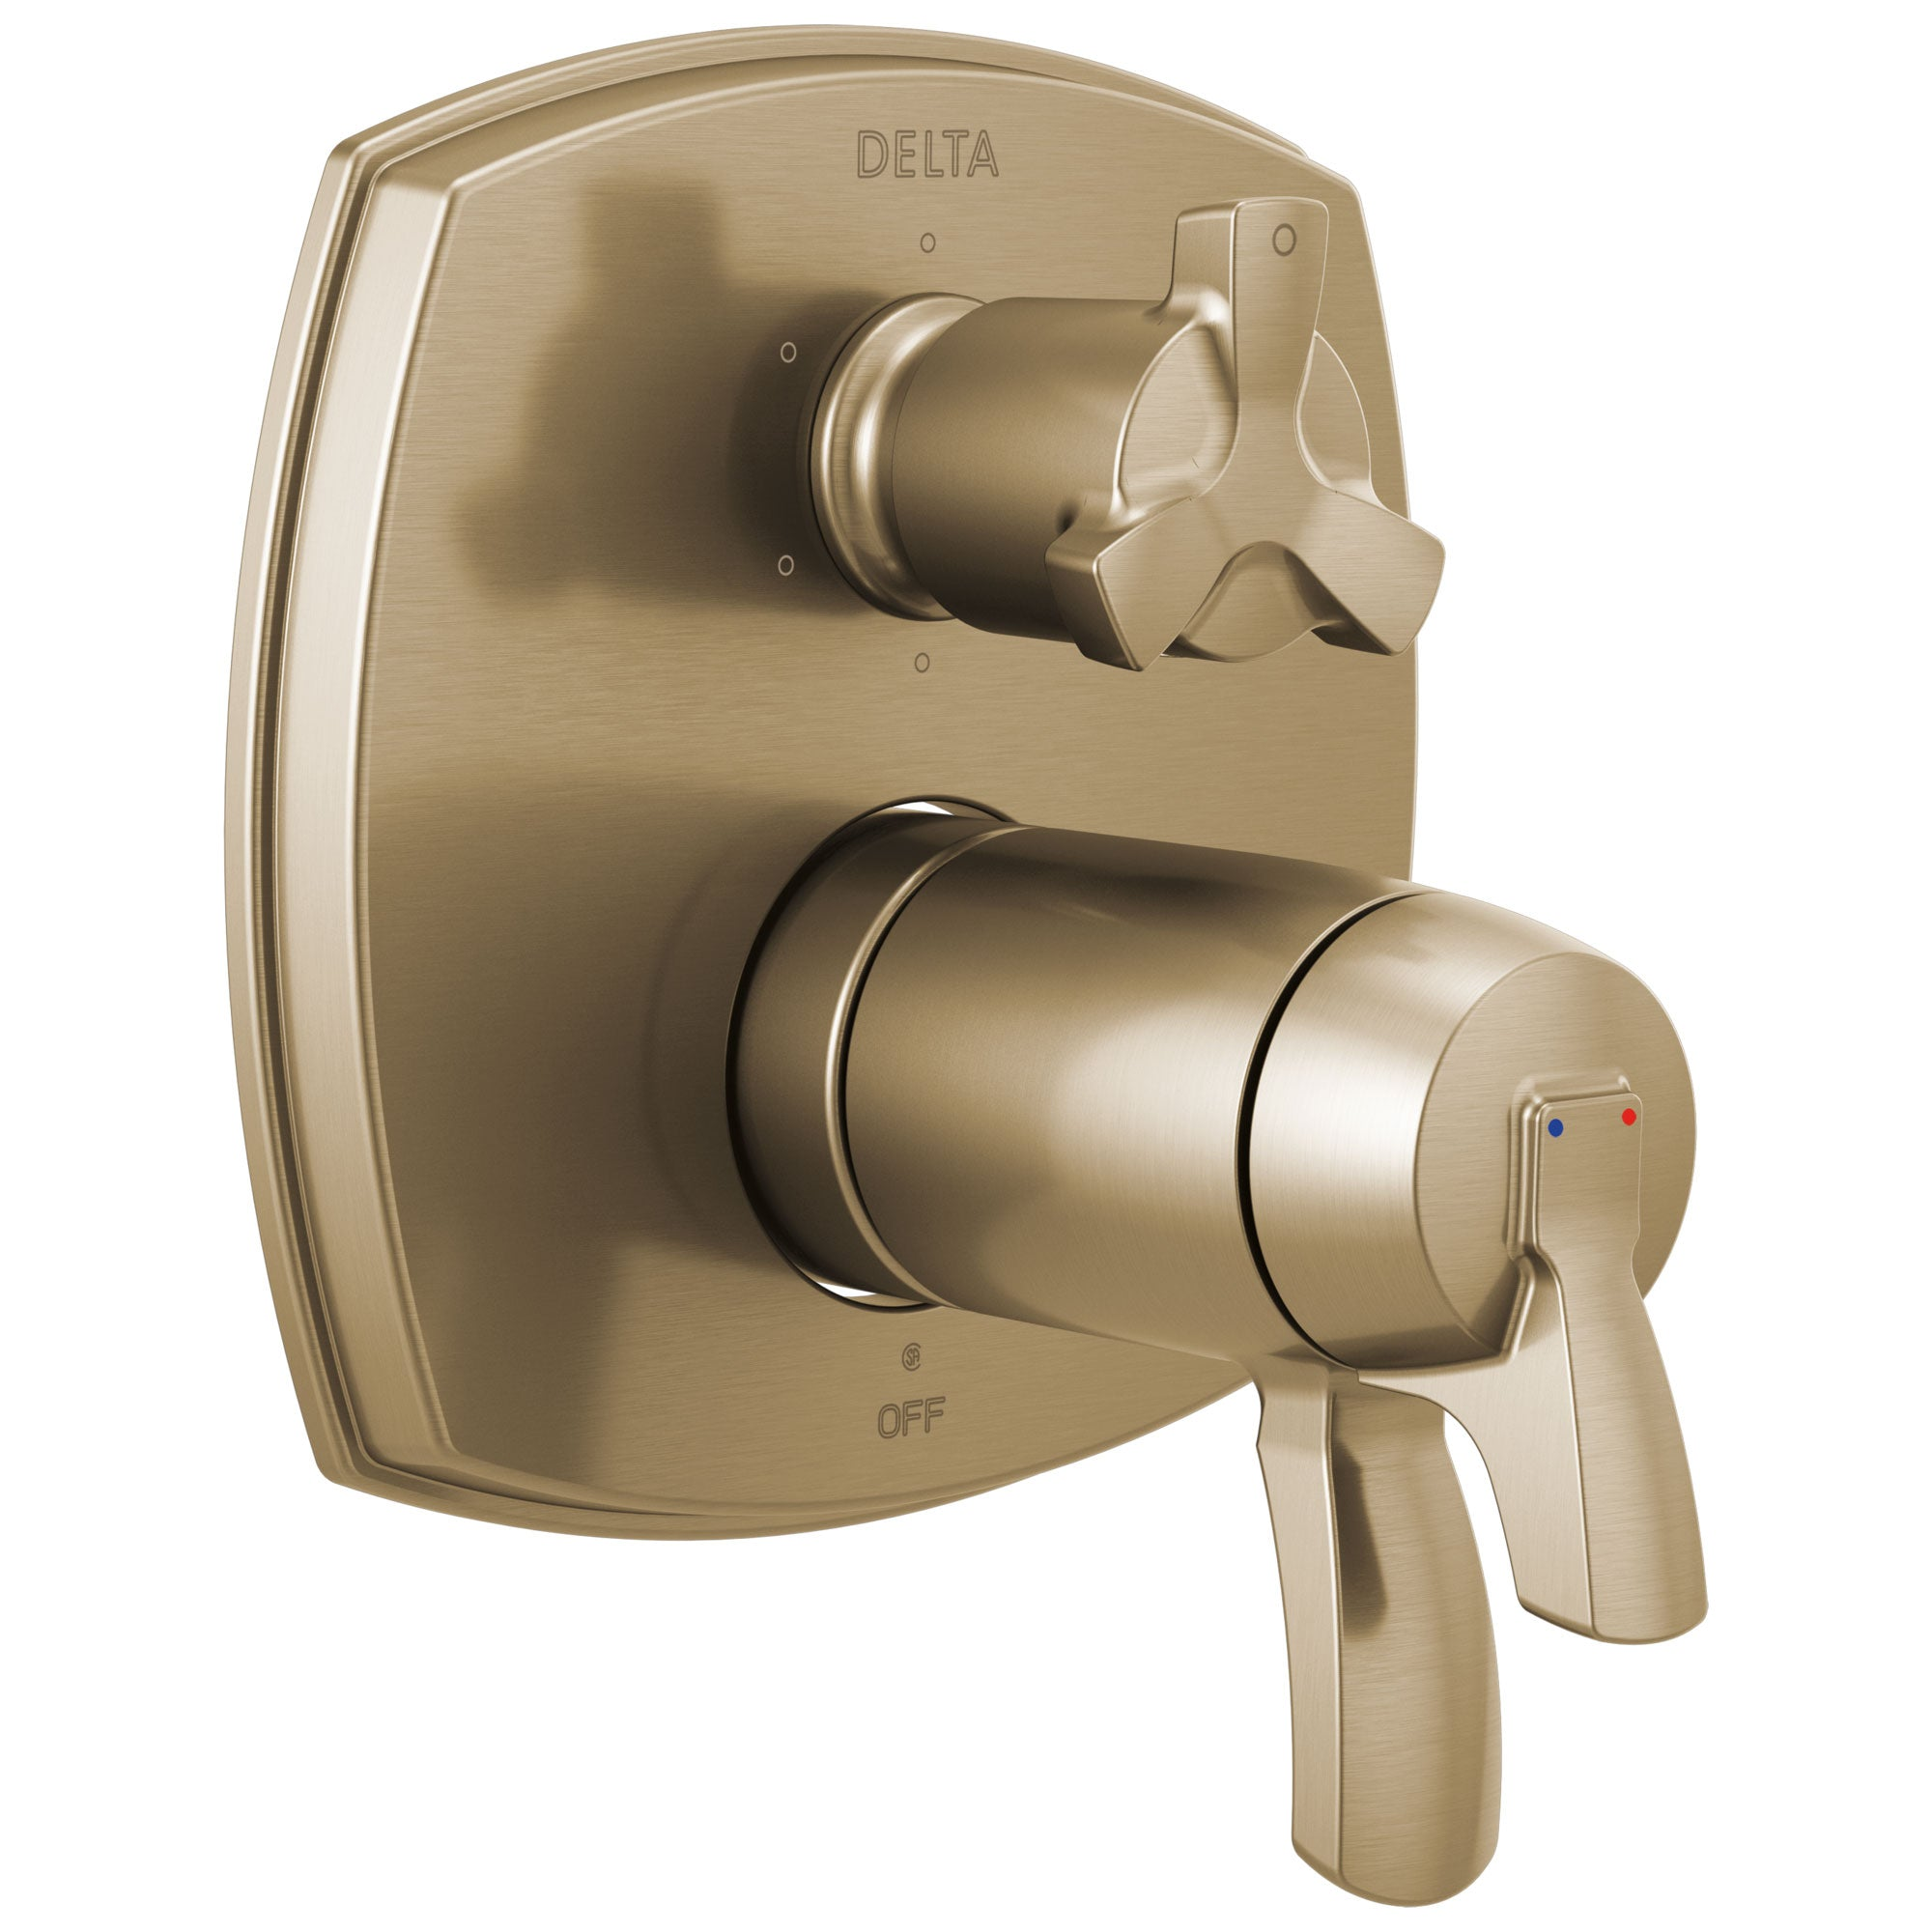 Delta Stryke Champagne Bronze Thermostatic Shower System Control with 6 Setting Integrated Cross Handle Diverter Includes Valve & Handles D3080V